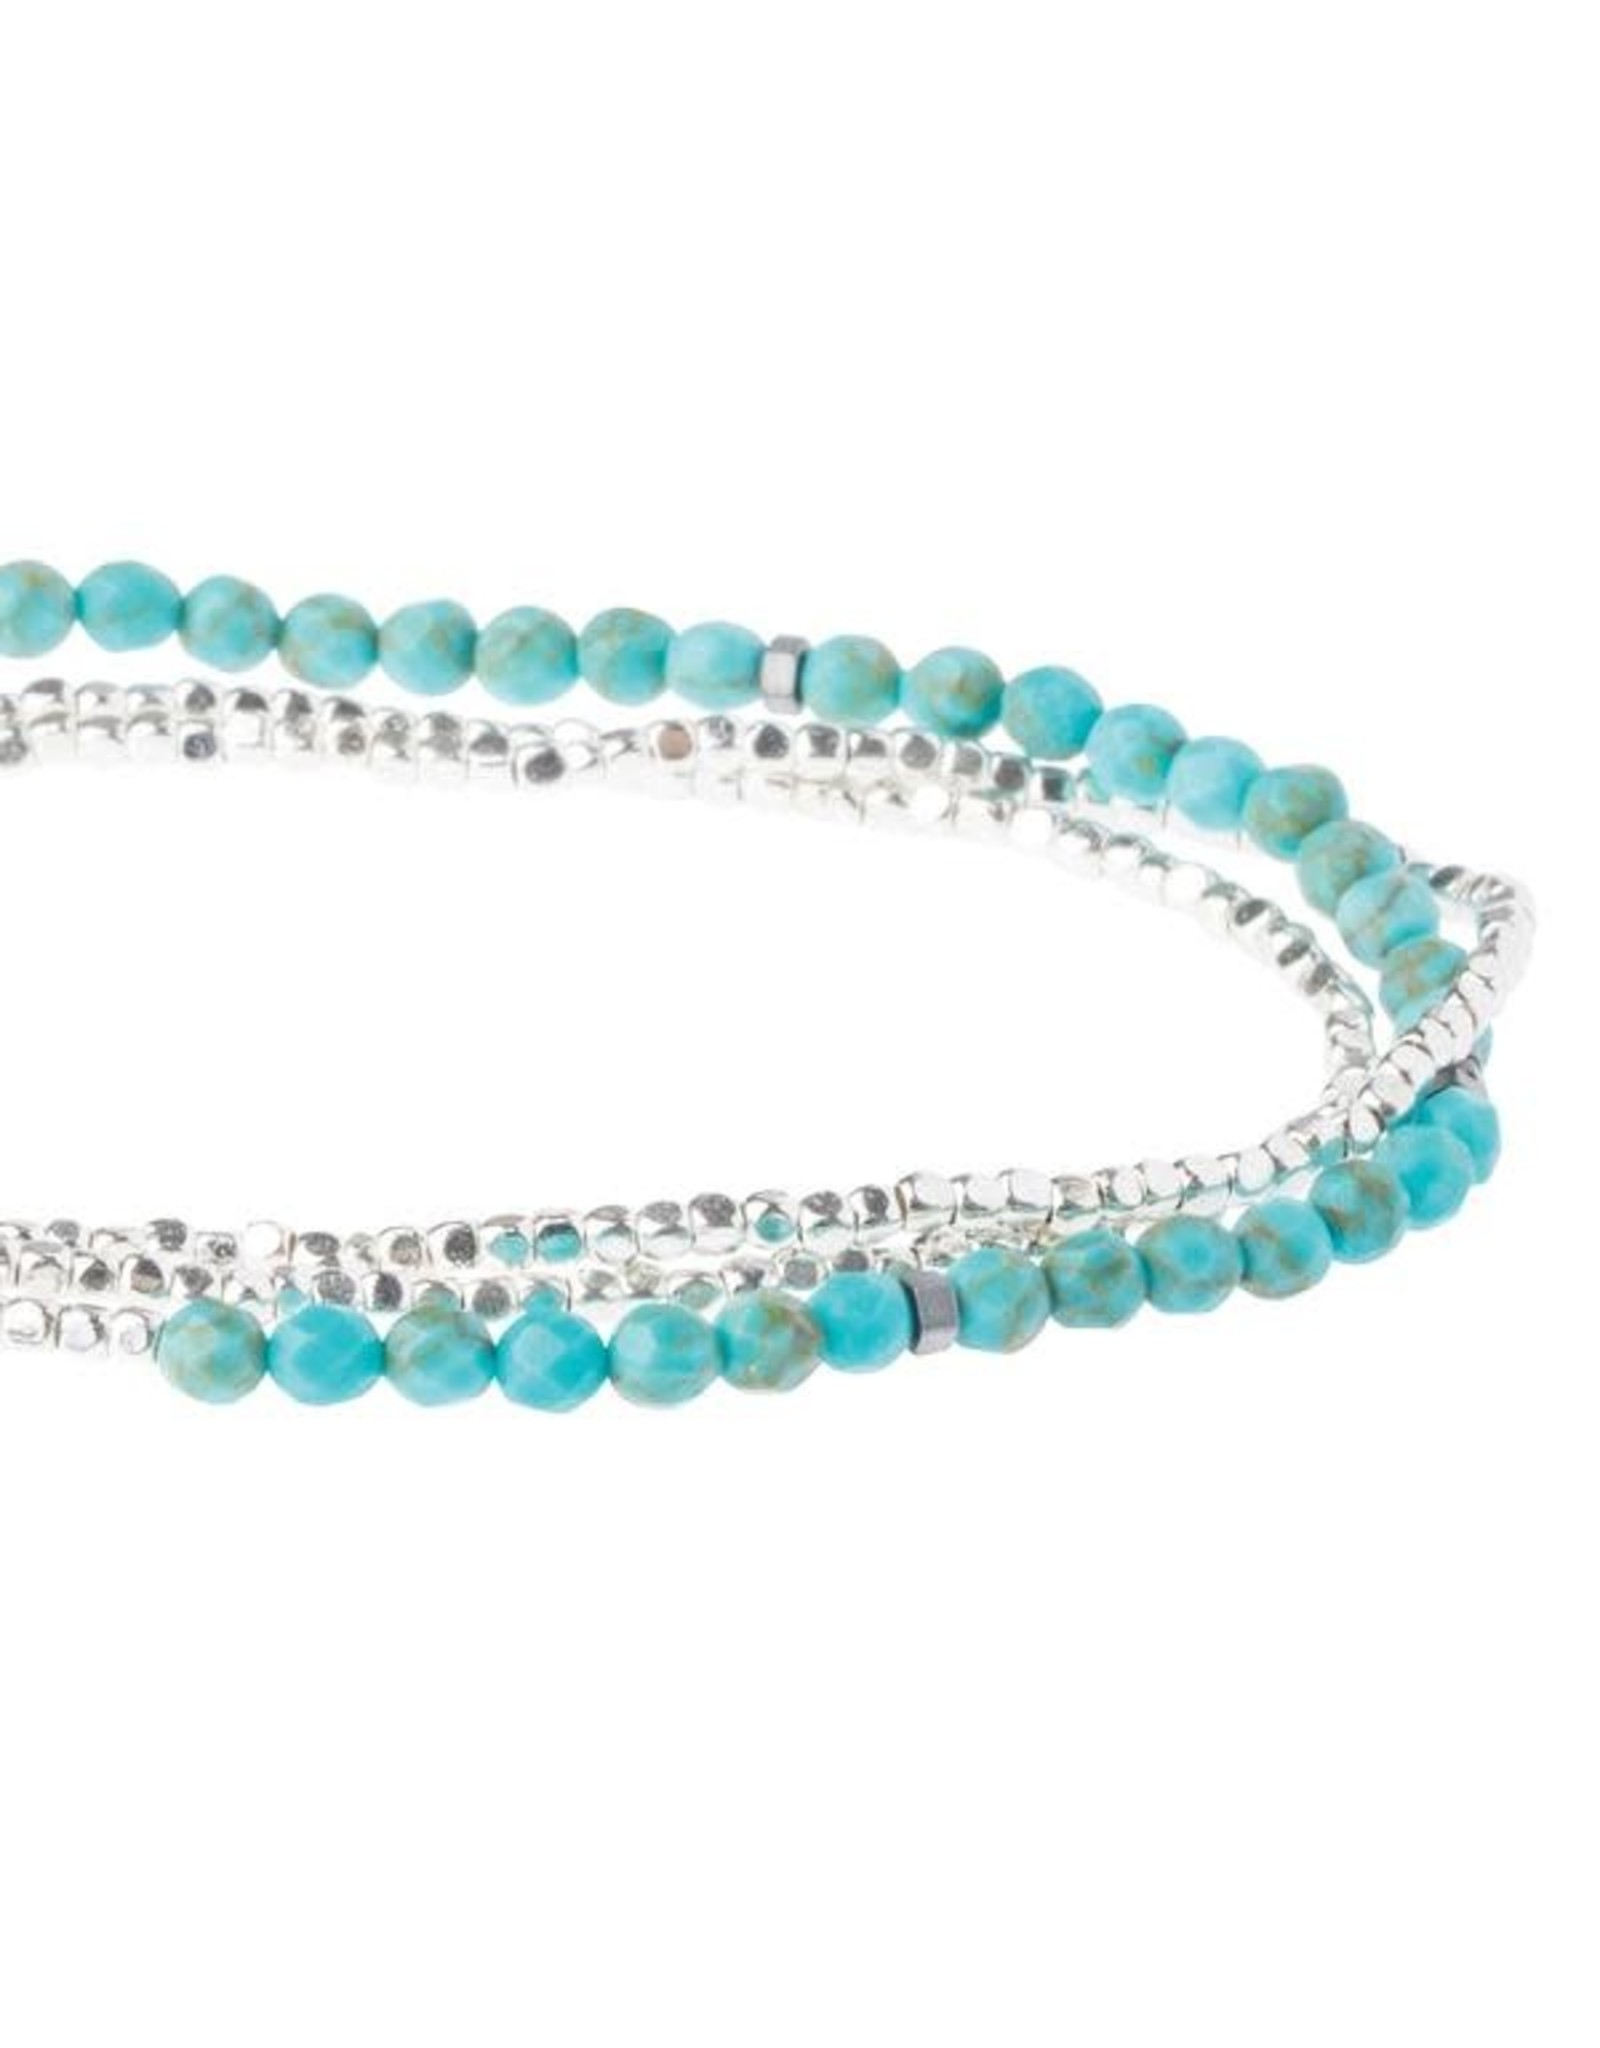 Scout- Turquoise/Silver Delicate Bracelet